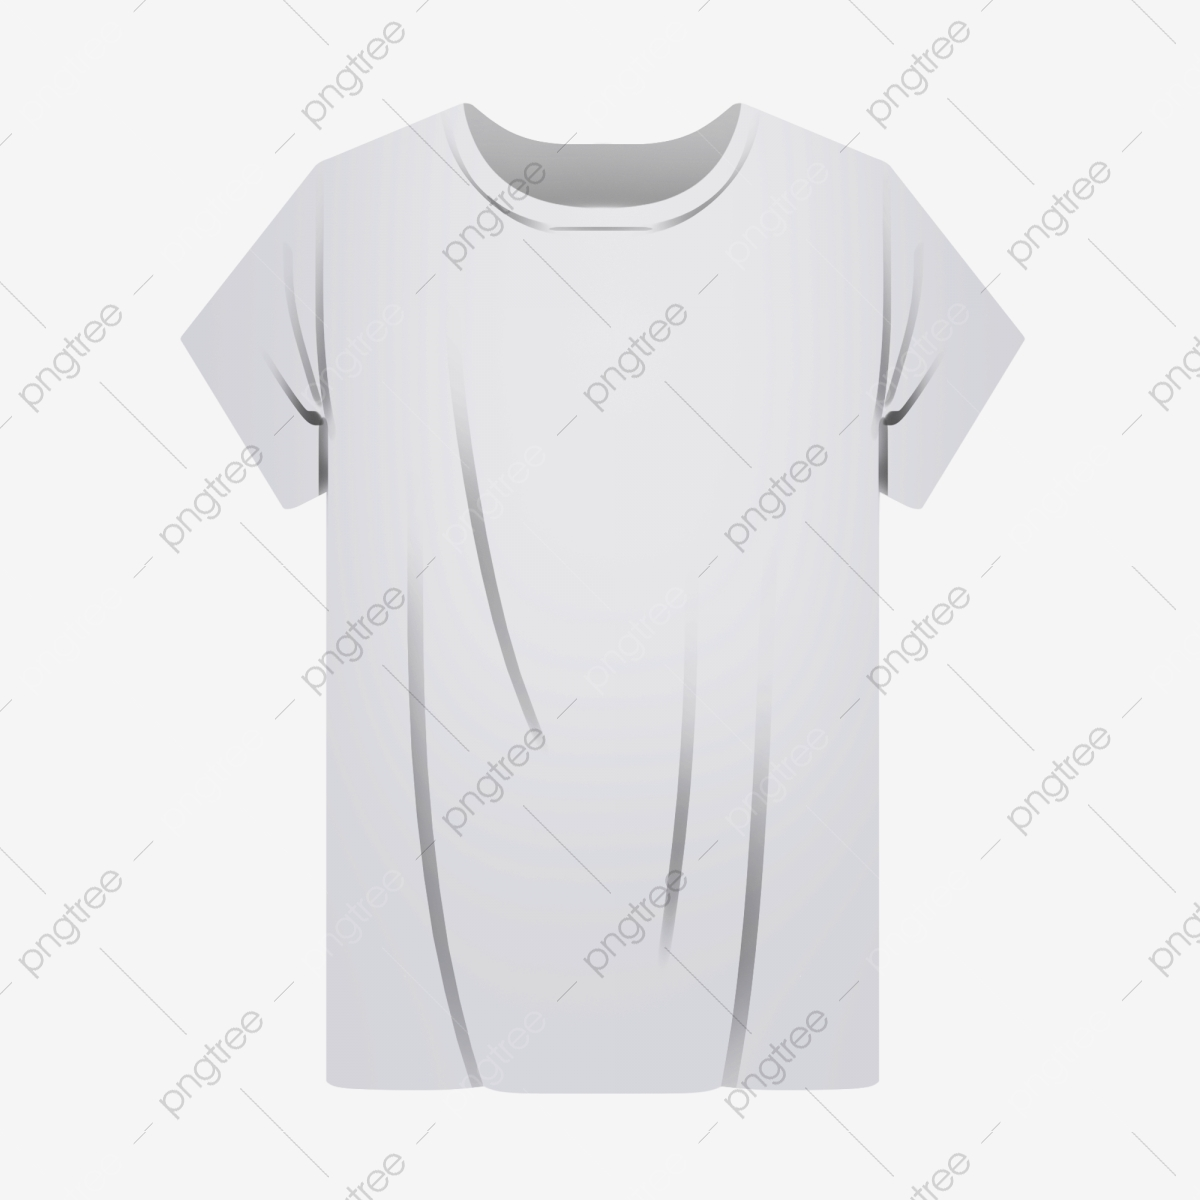 White T Shirt Png Images Vector And Psd Files Free Download On Pngtree